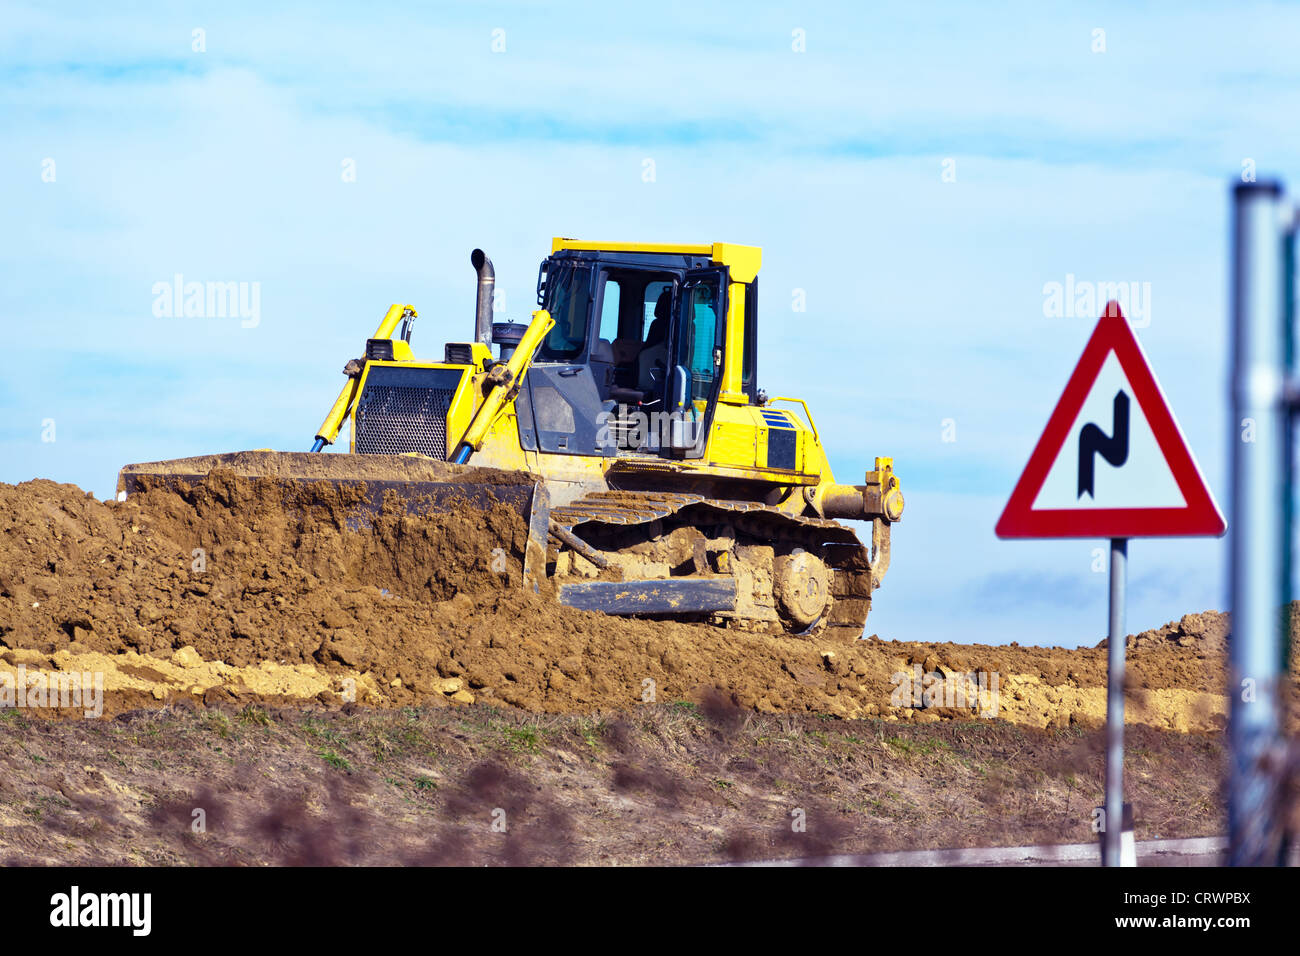 Excavator at construction work on site - Stock Image